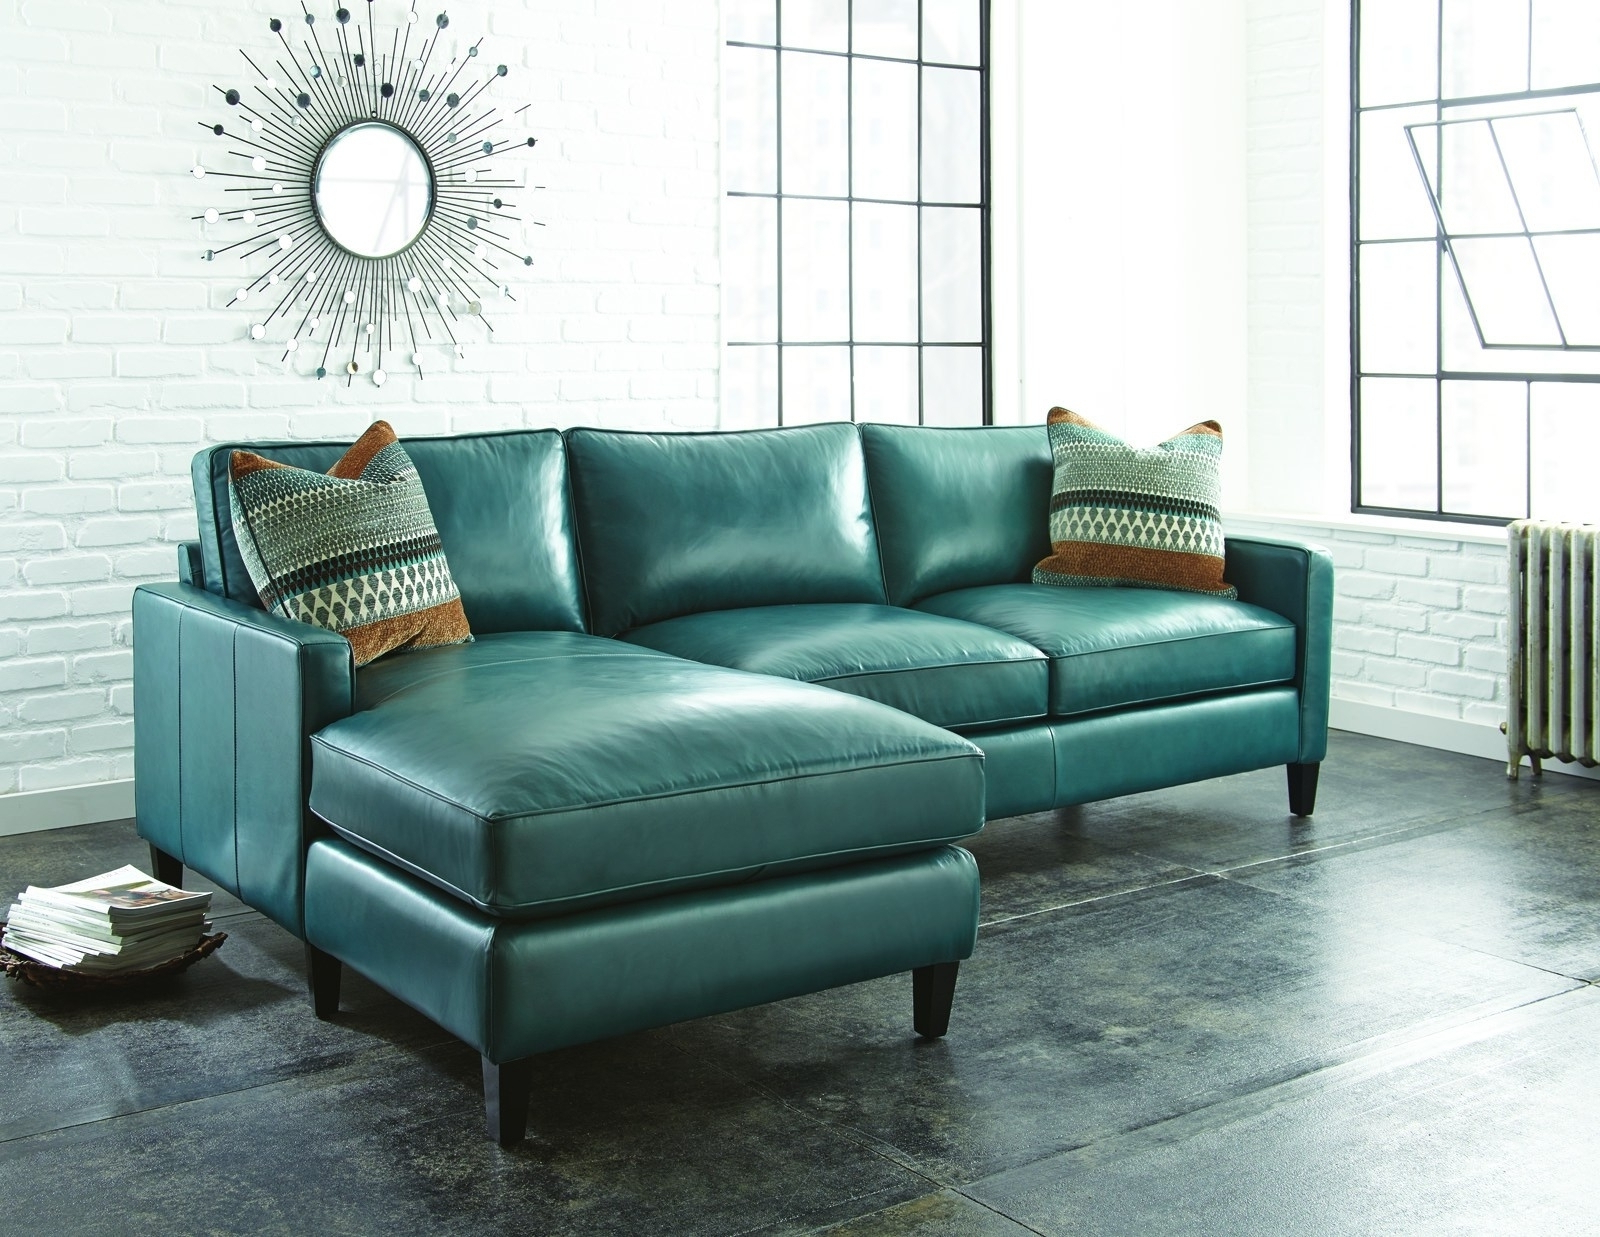 Dulce Mid Century Chaise Sofas Dark Blue Inside Latest Turquoise Leather Sectional Sofa Naples Turquoise Leather (View 3 of 25)